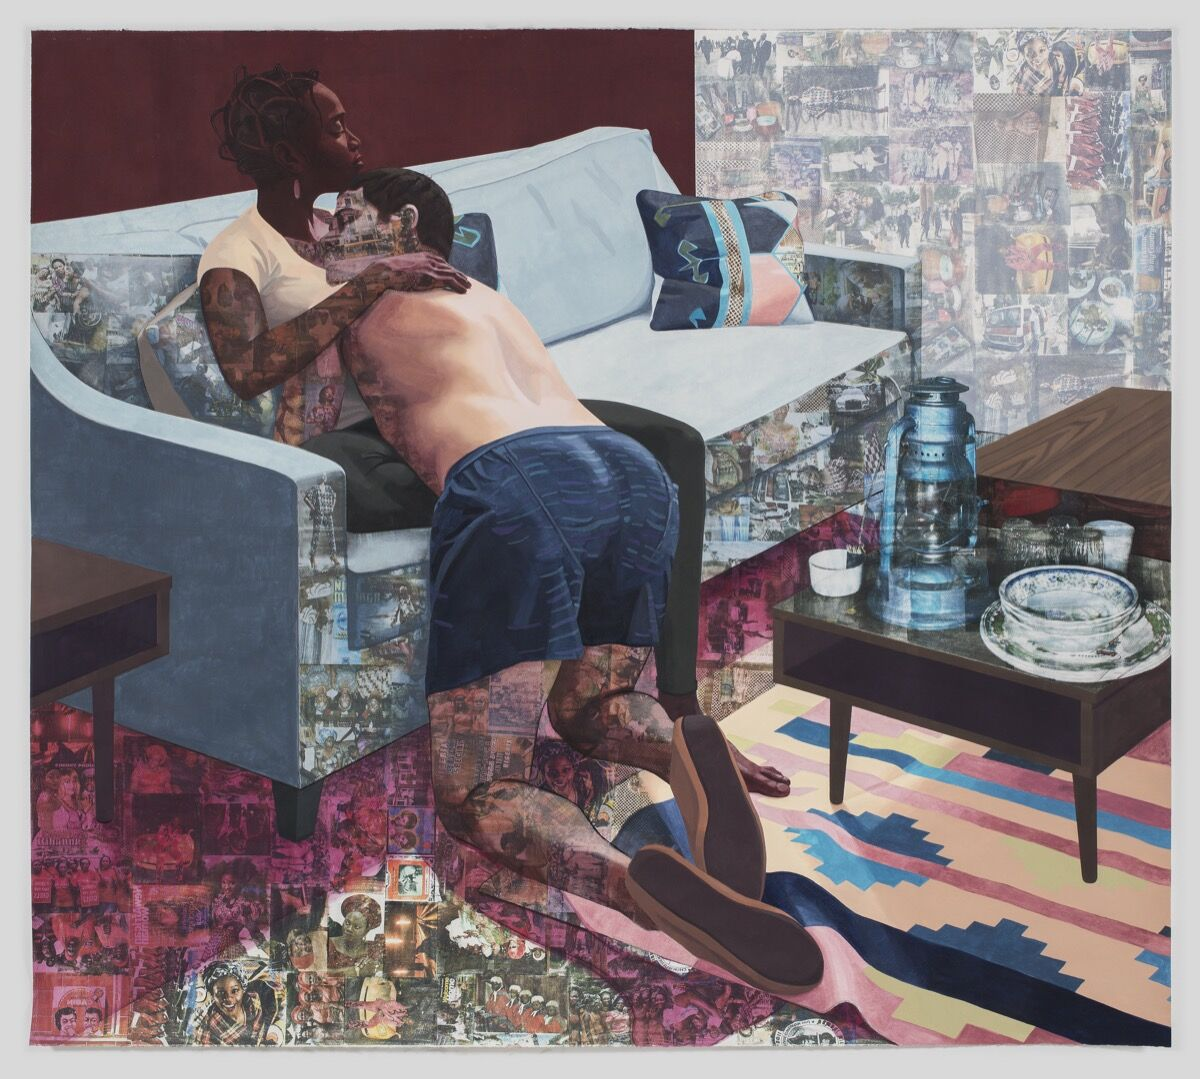 Njideka Akunyili Crosby, Ike Ya, 2016. © Njideka Akunyili Crosby. Image courtesy of the artist and Victoria Miro, London.